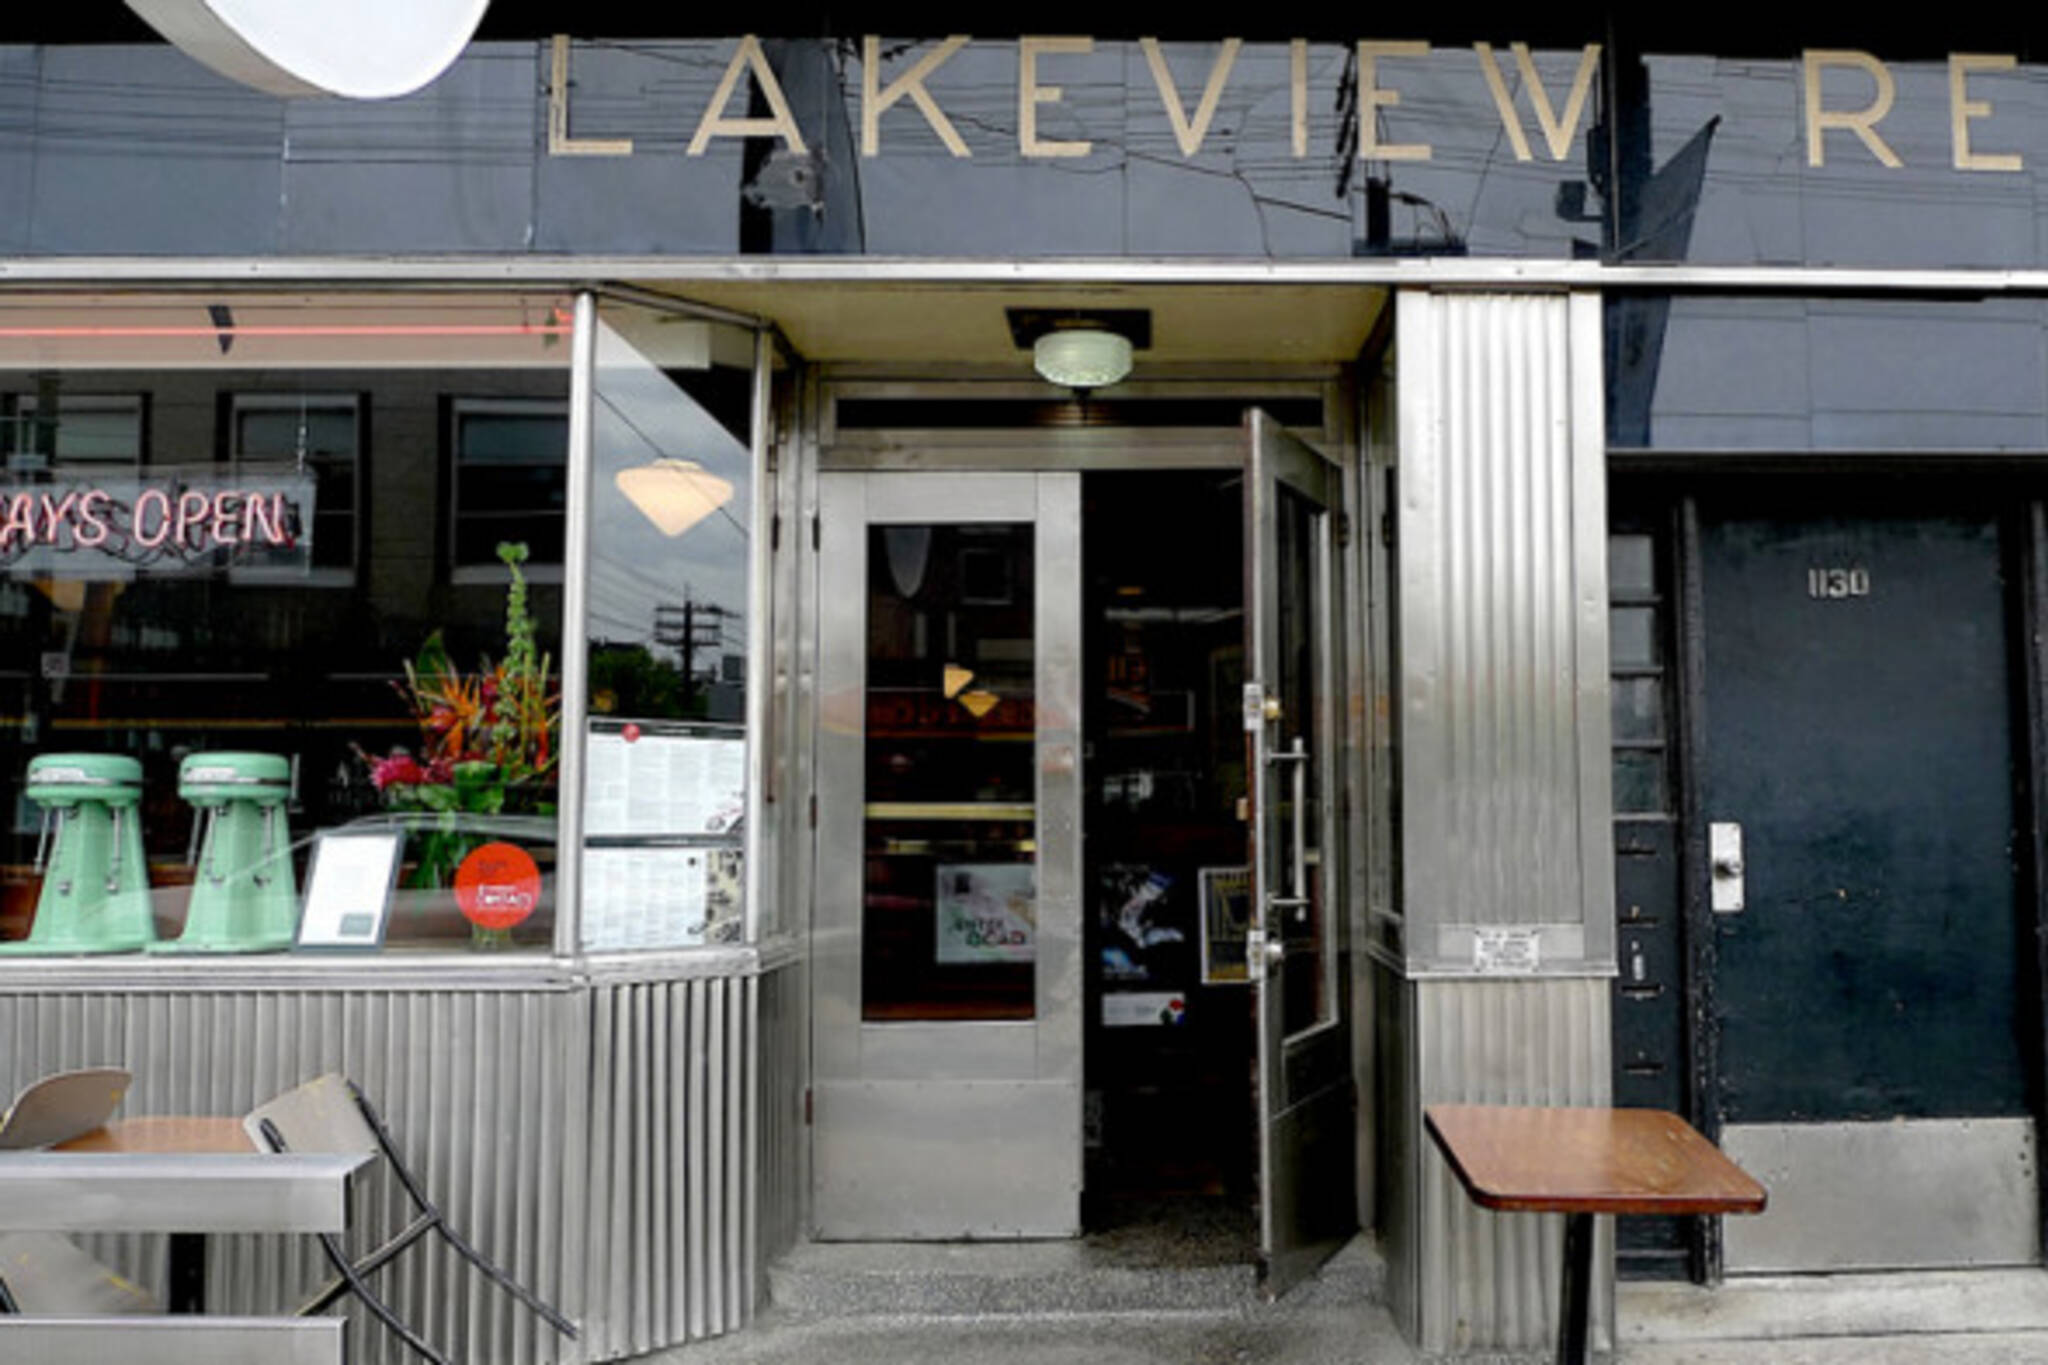 Lakeview Restaurant Toronto